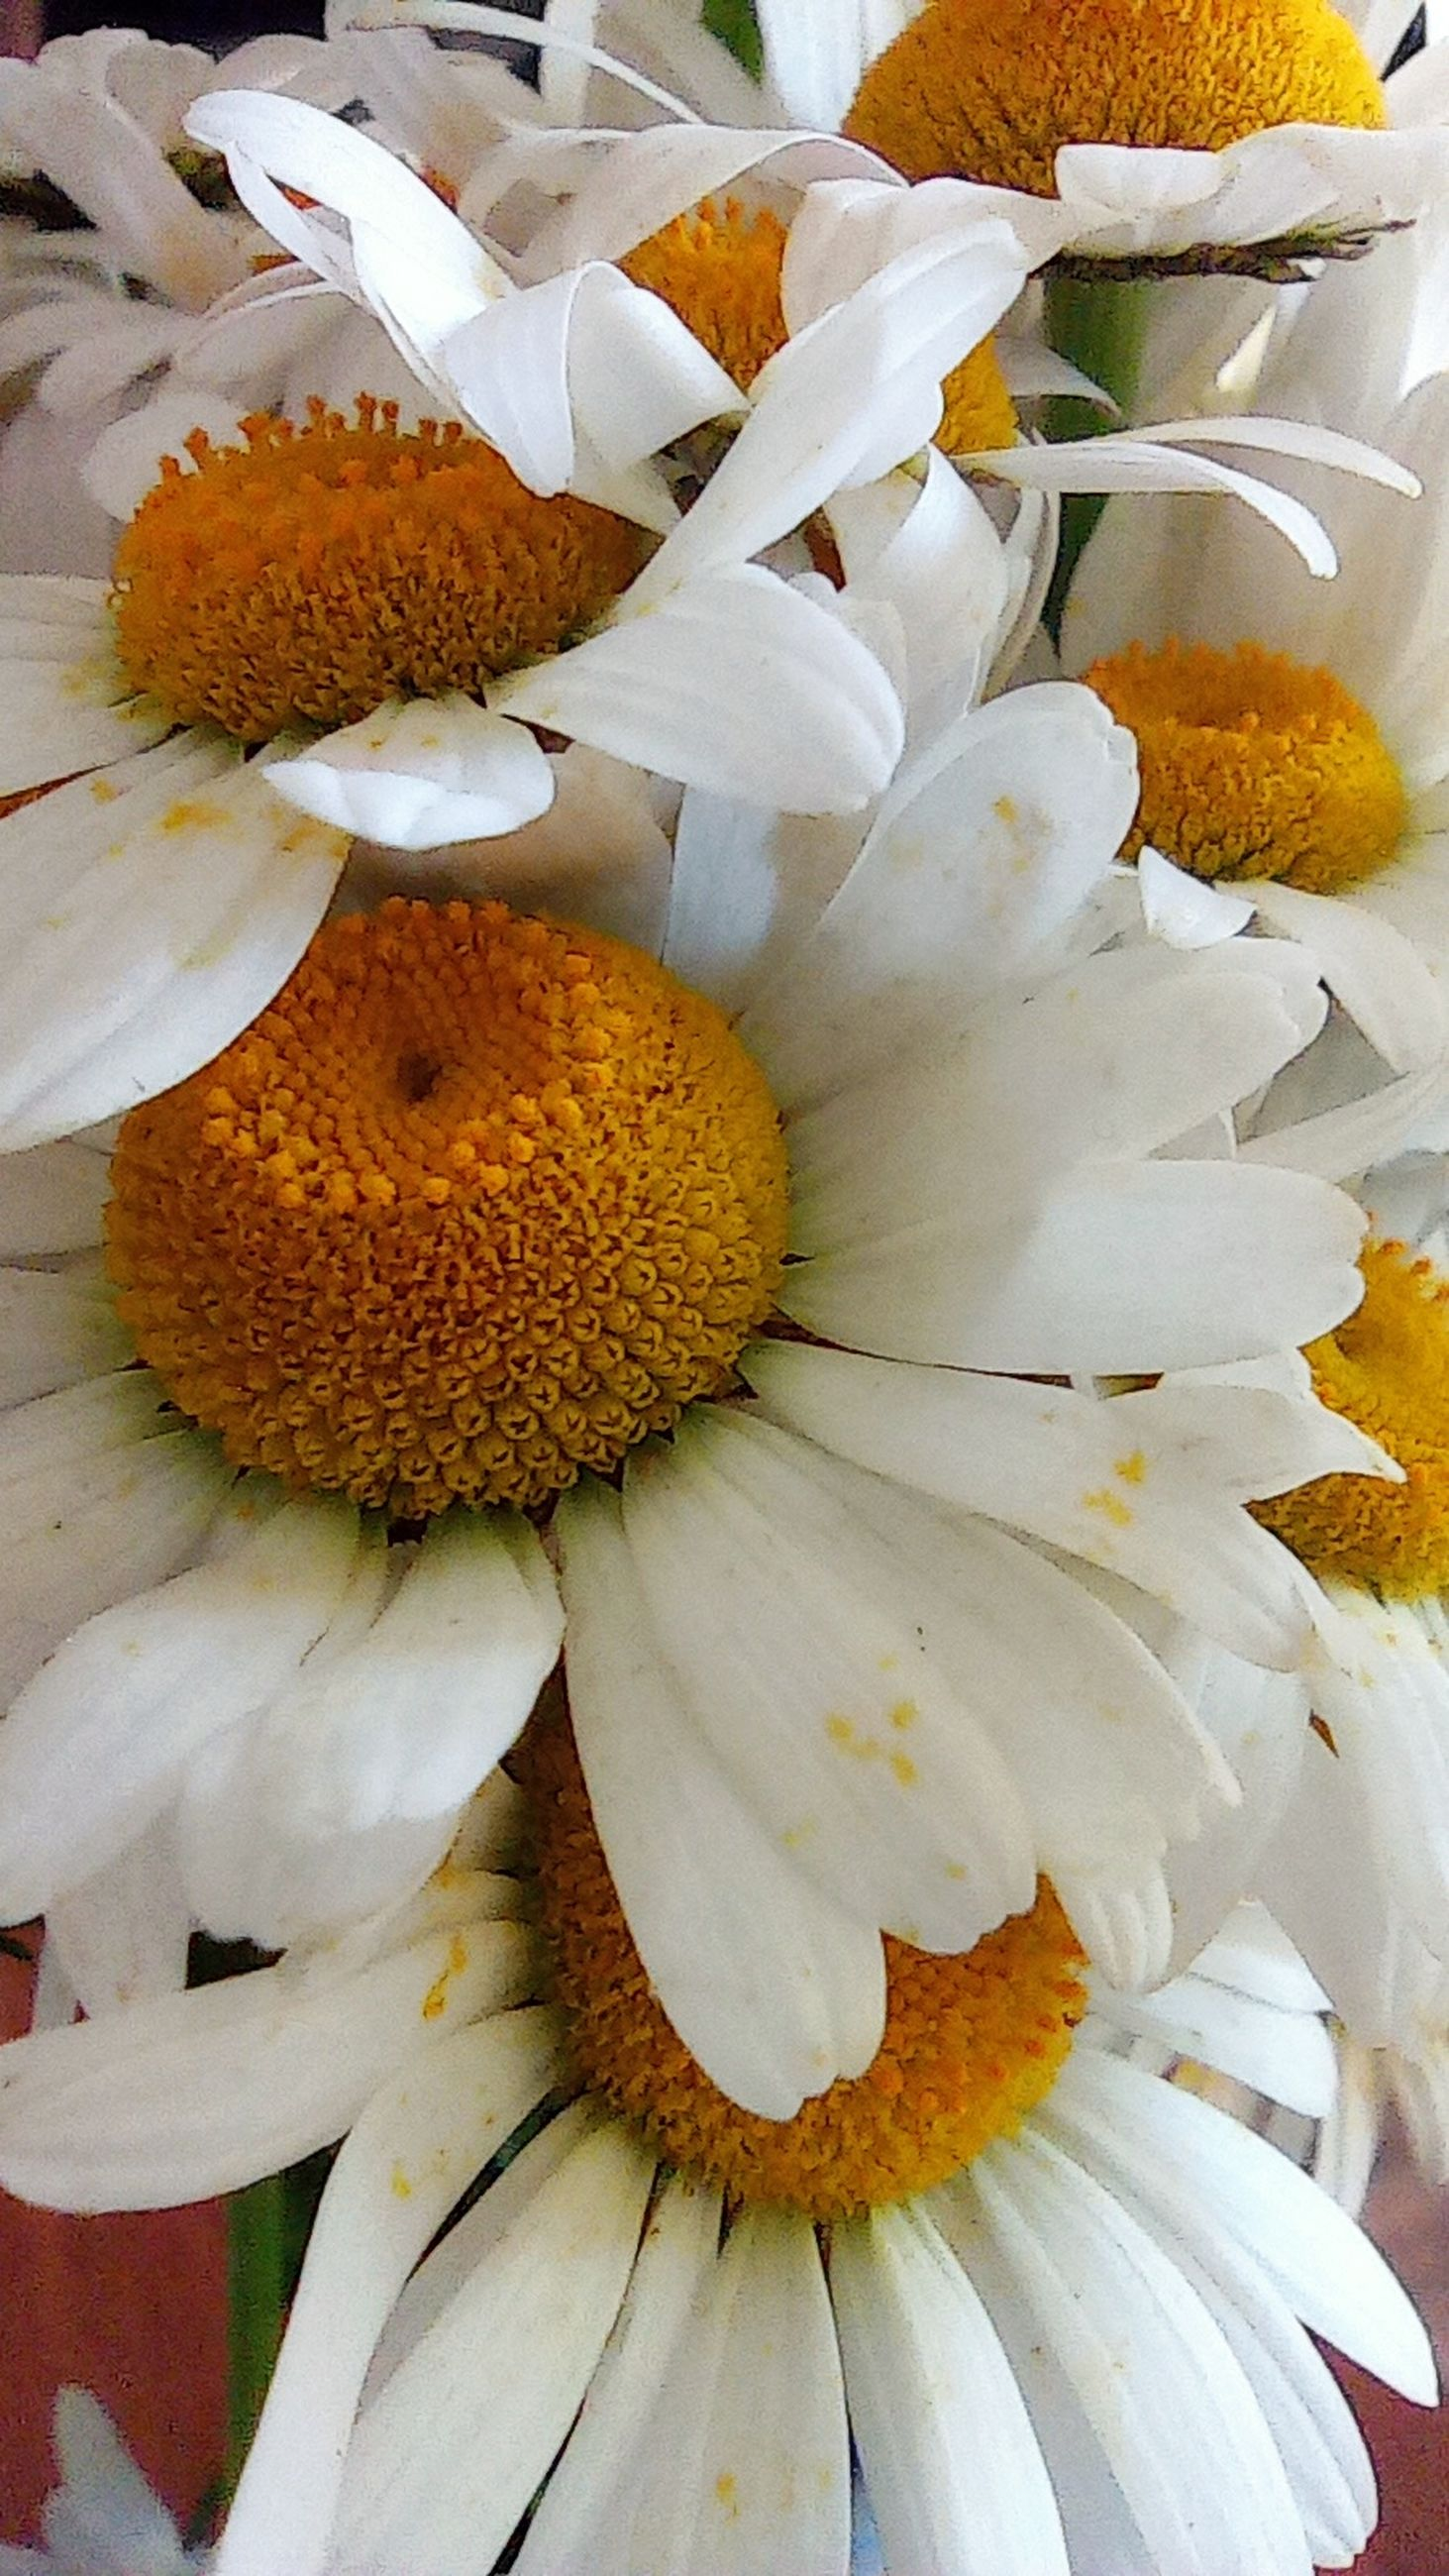 flower, flowering plant, yellow, plant, freshness, beauty in nature, fragility, flower head, petal, pollen, close-up, no people, inflorescence, white, nature, bouquet, growth, food, food and drink